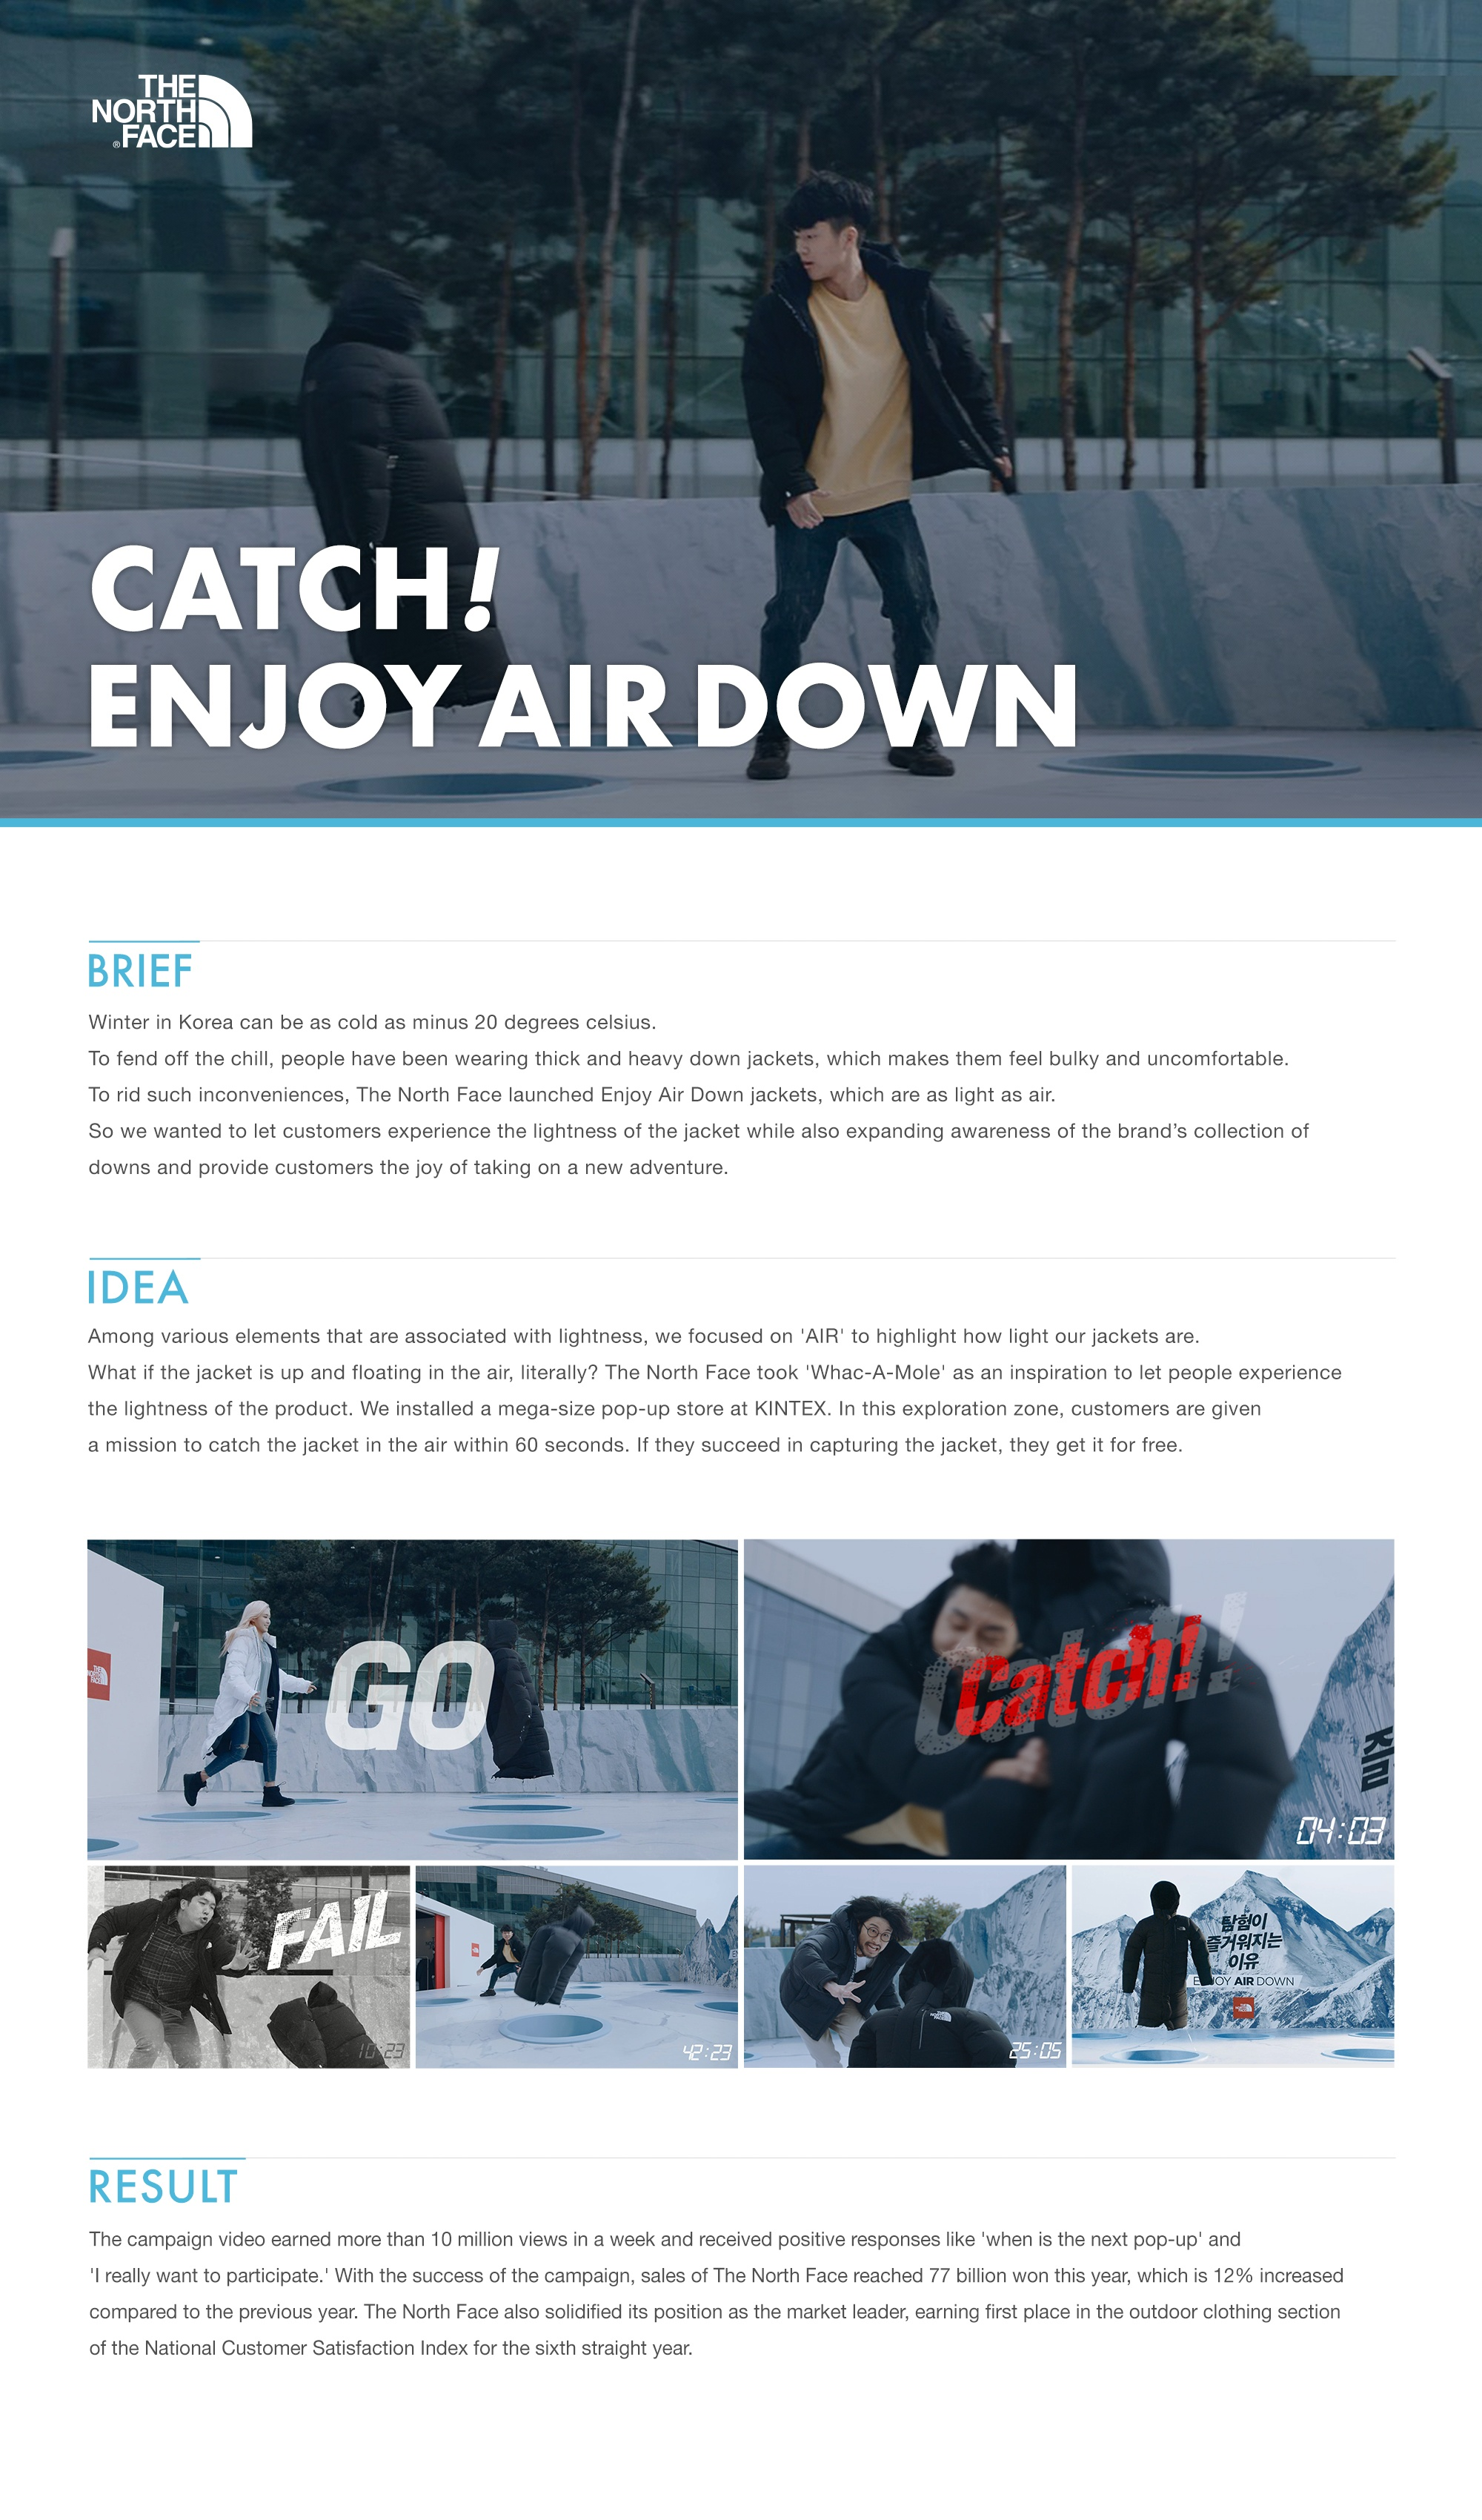 Image Media for CATCH! ENJOY AIR DOWN